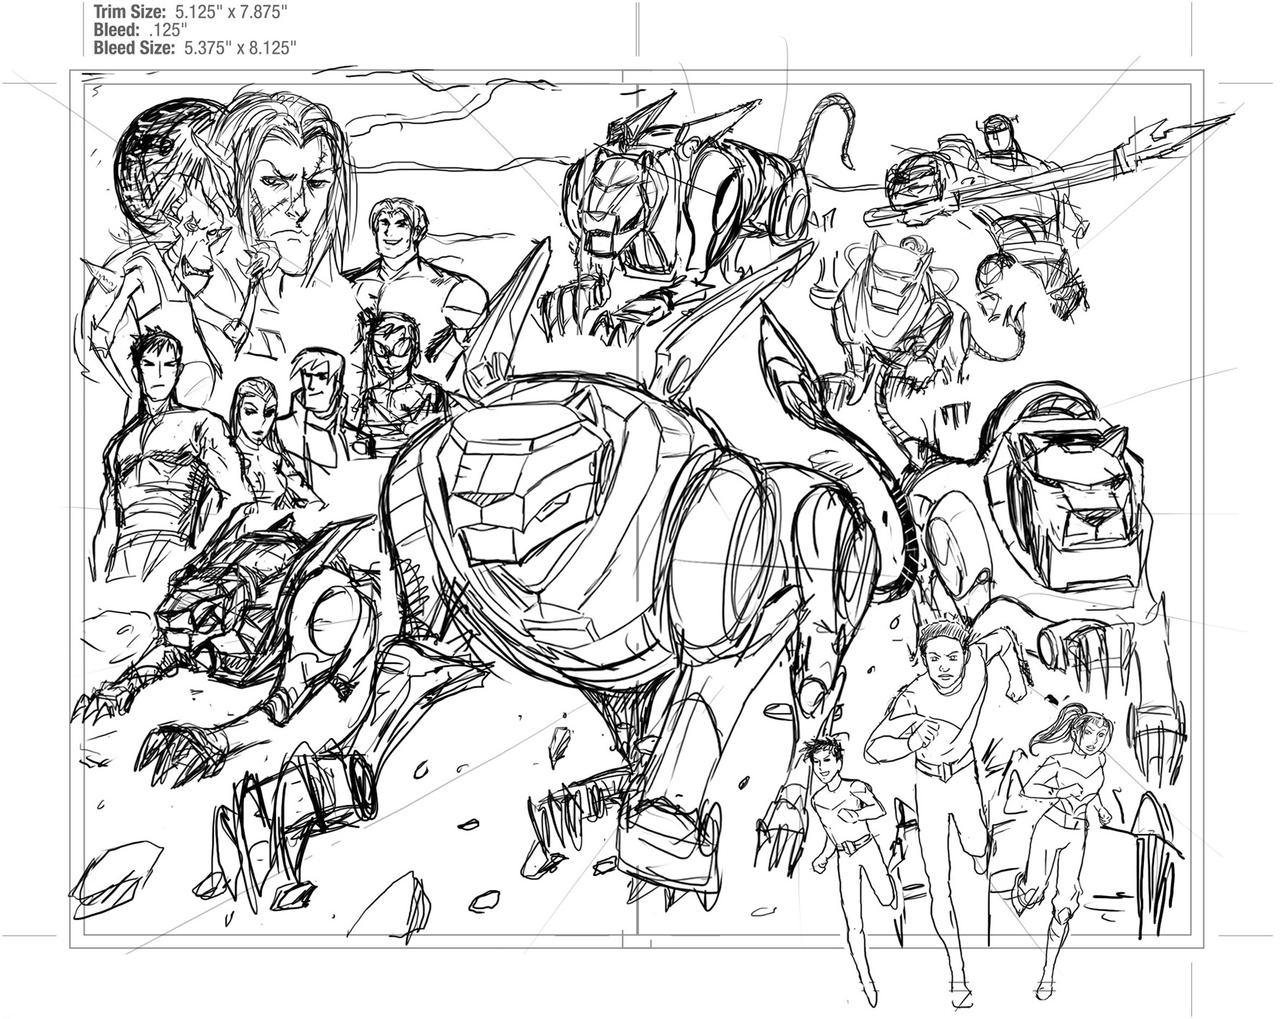 Voltron force unused draft by ultrachicken on deviantart for Voltron coloring pages free